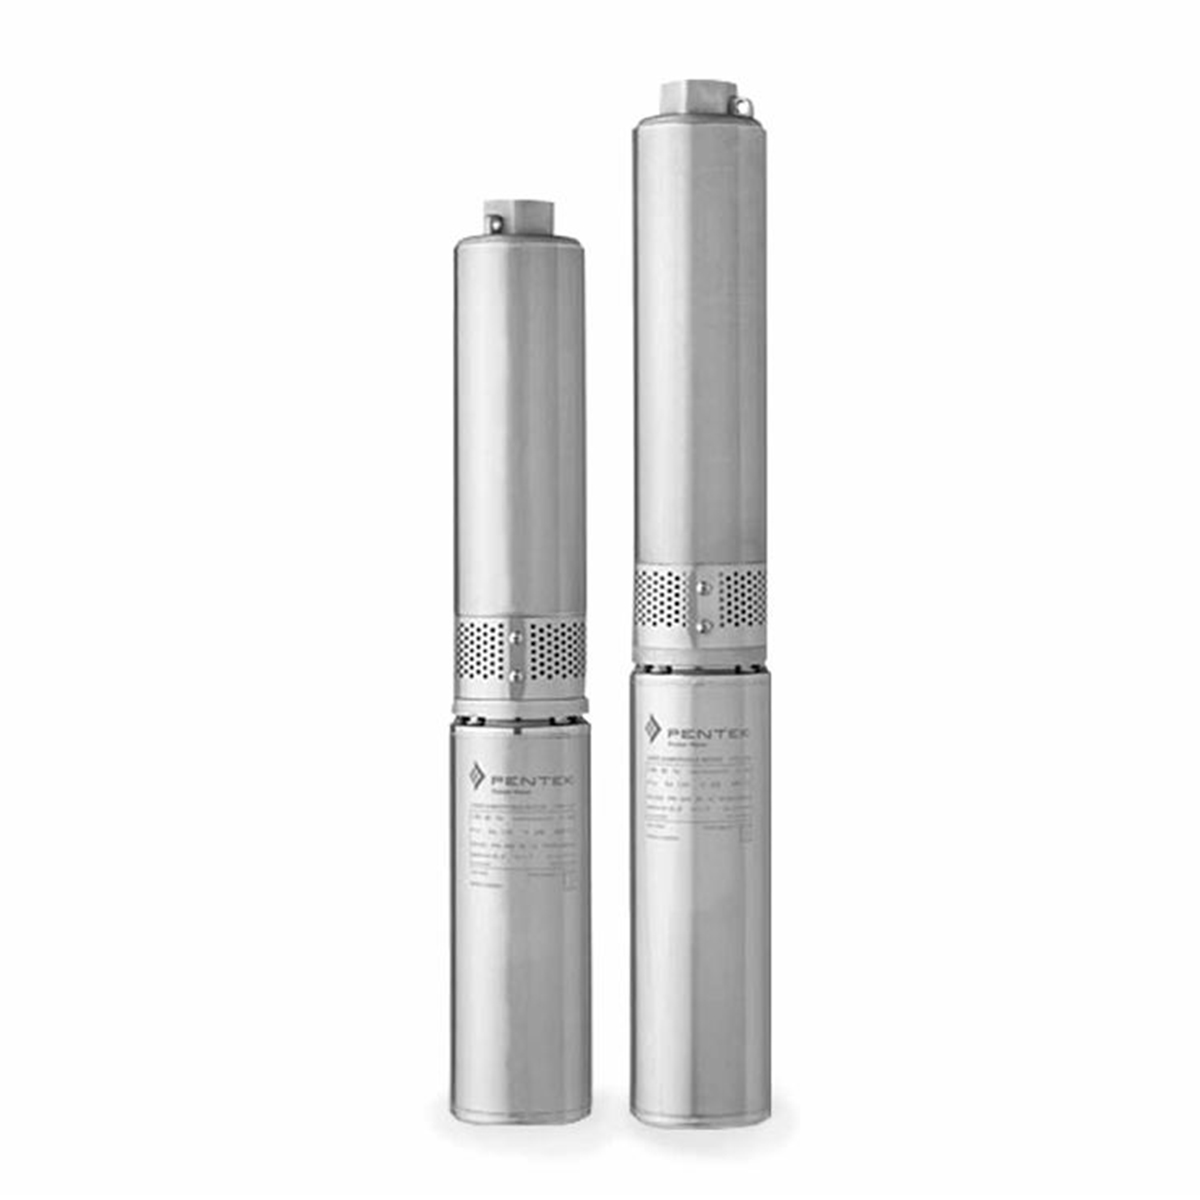 Myers 3ST52-8PLUS-P4 Submersible Stainless Steel Pump 3-Wire 1PH